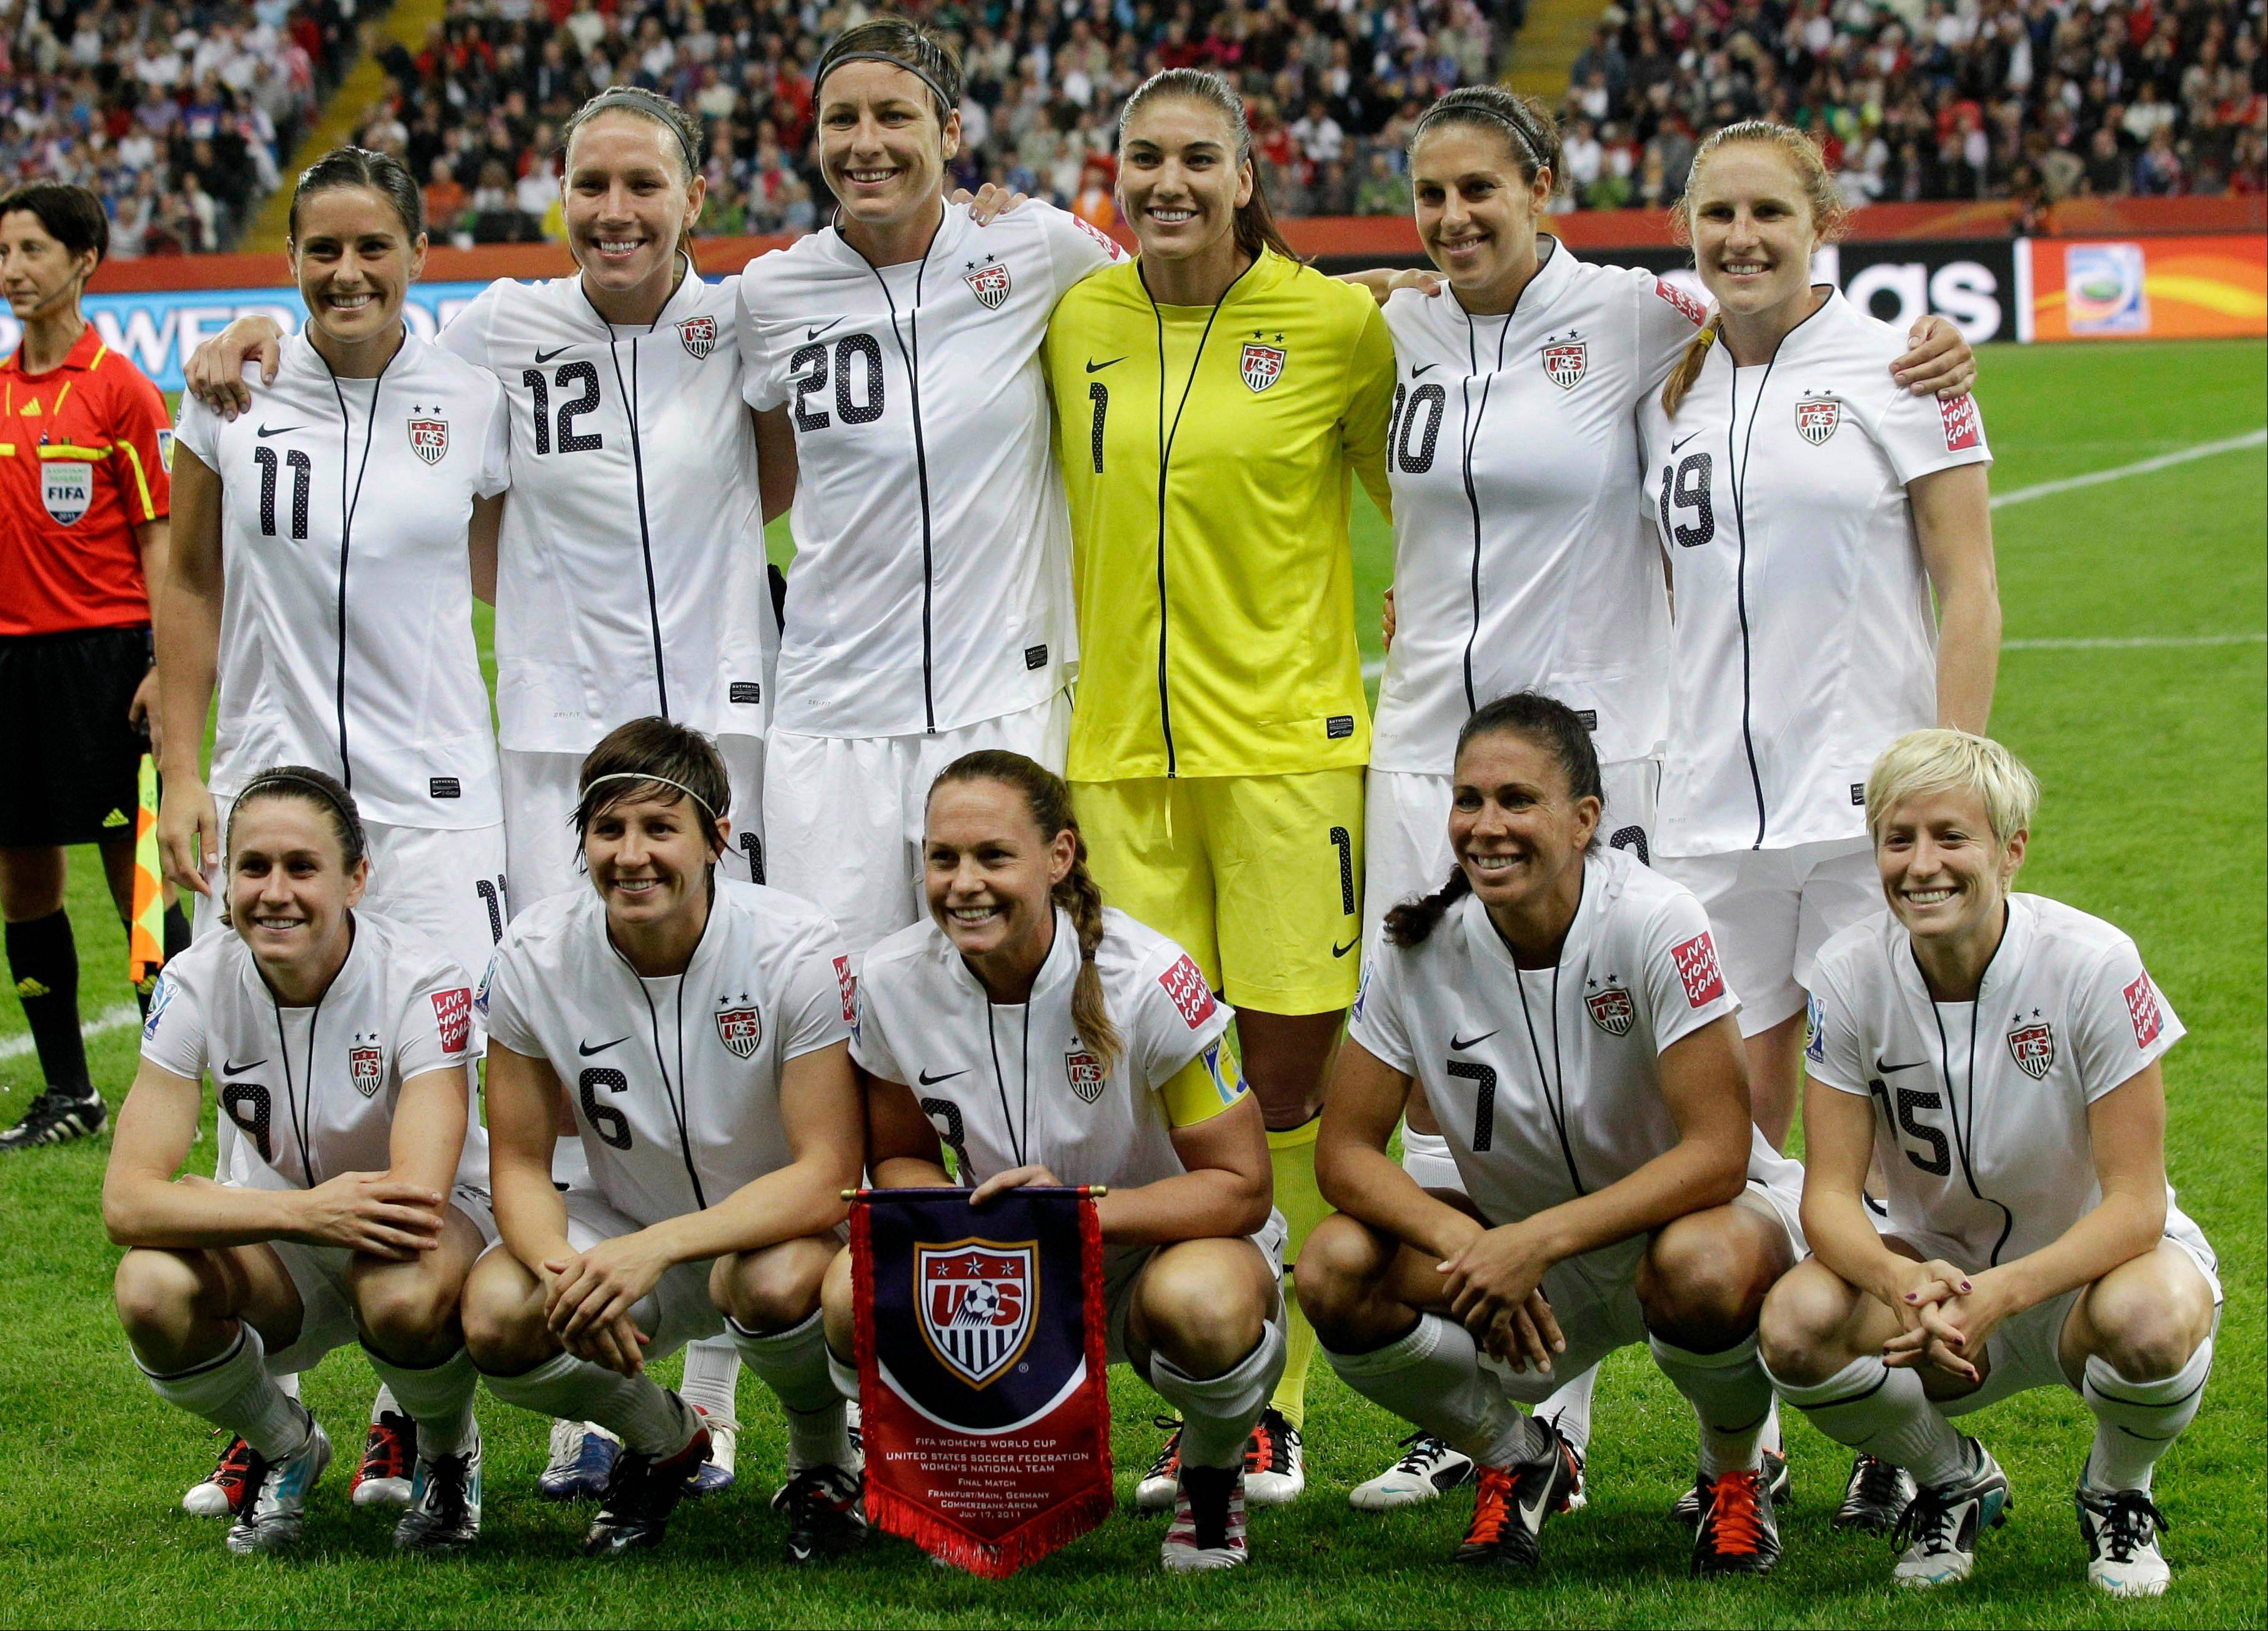 United States' Alex Krieger, from top left, Lauren Cheney, Abby Wambach, Hope Solo, Carli Lloyd and Rachel Buehler and, from bottom left, Heather O'Reilly, Amy LePeilbet, Christie Rampone, Shannon Boxx and Megan Rapinoe, pose for a team photo before Sunday's final match against Japan.